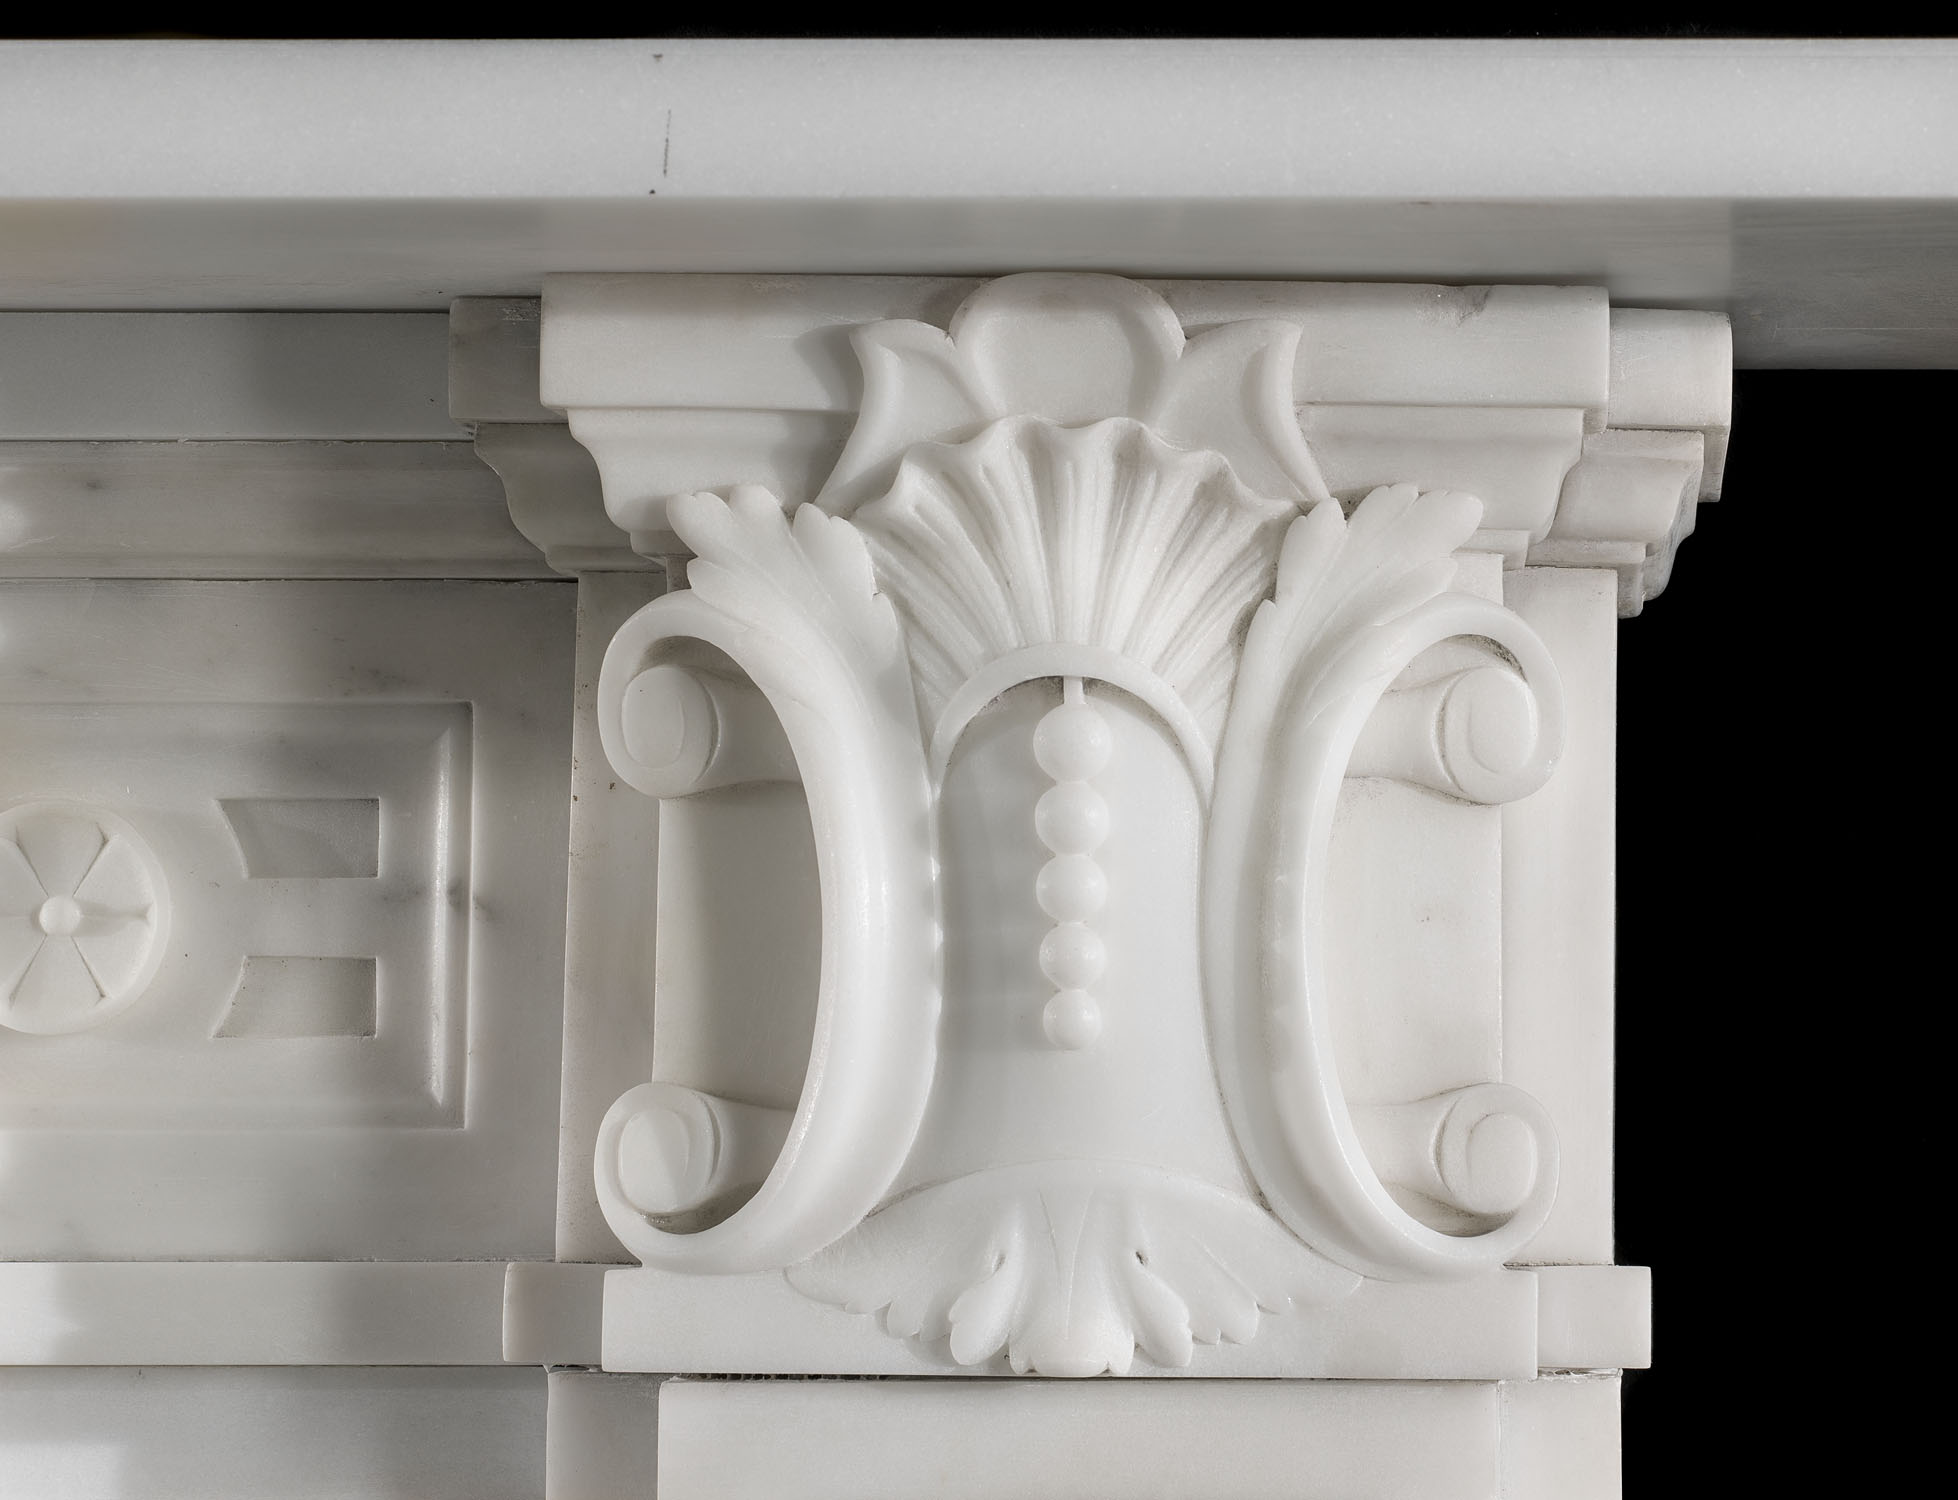 An antique Victorian fireplace mantel in white statuary marble